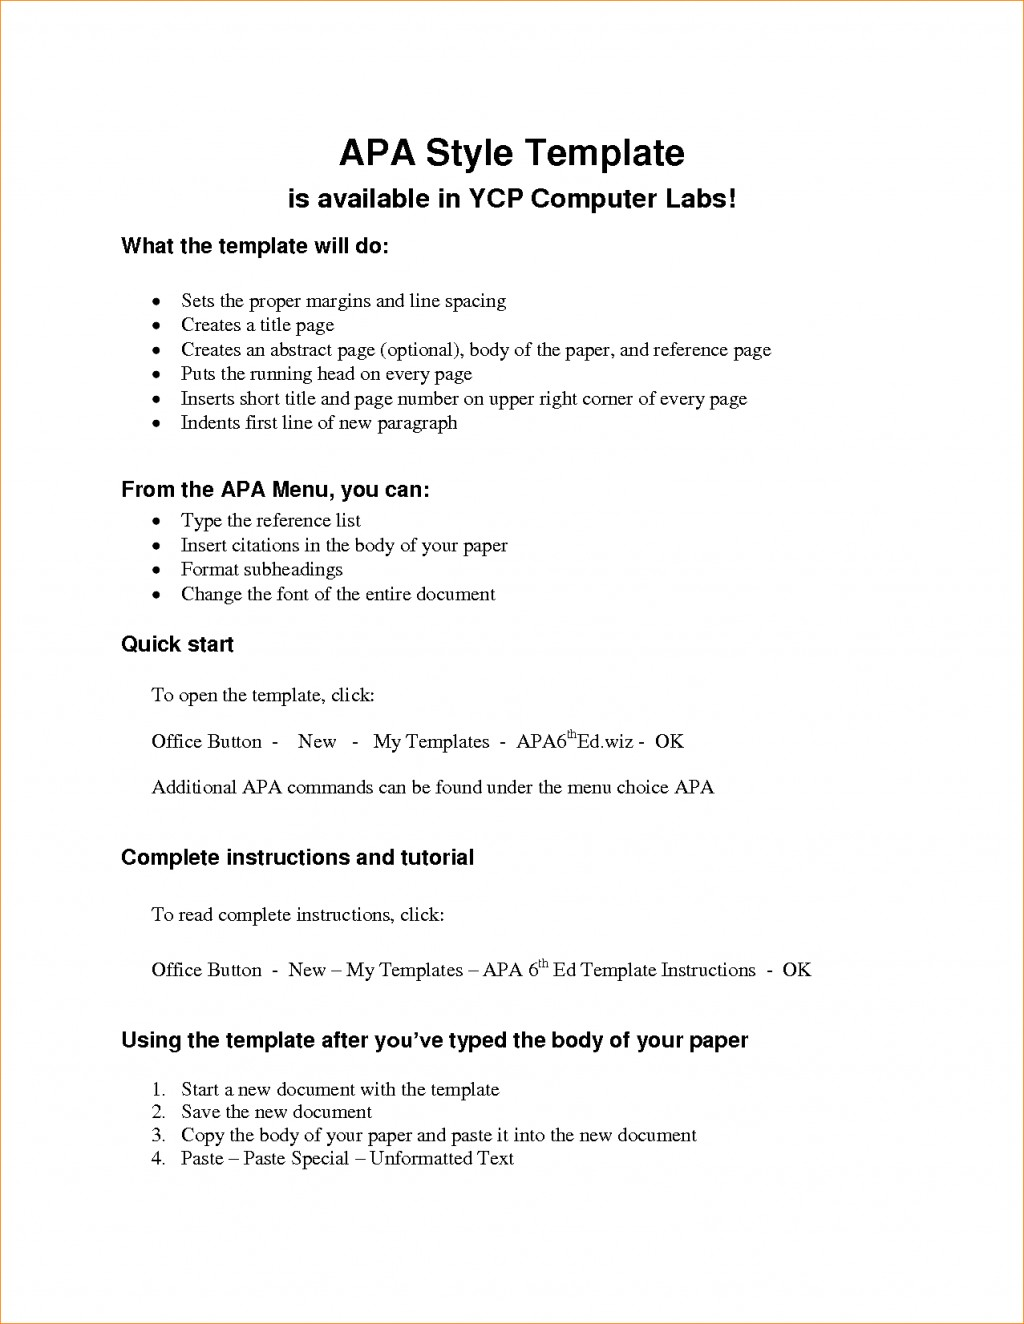 003 Research Paper Samples Of Apa Style Papers Outline Template Fascinating Sample Format Example Large